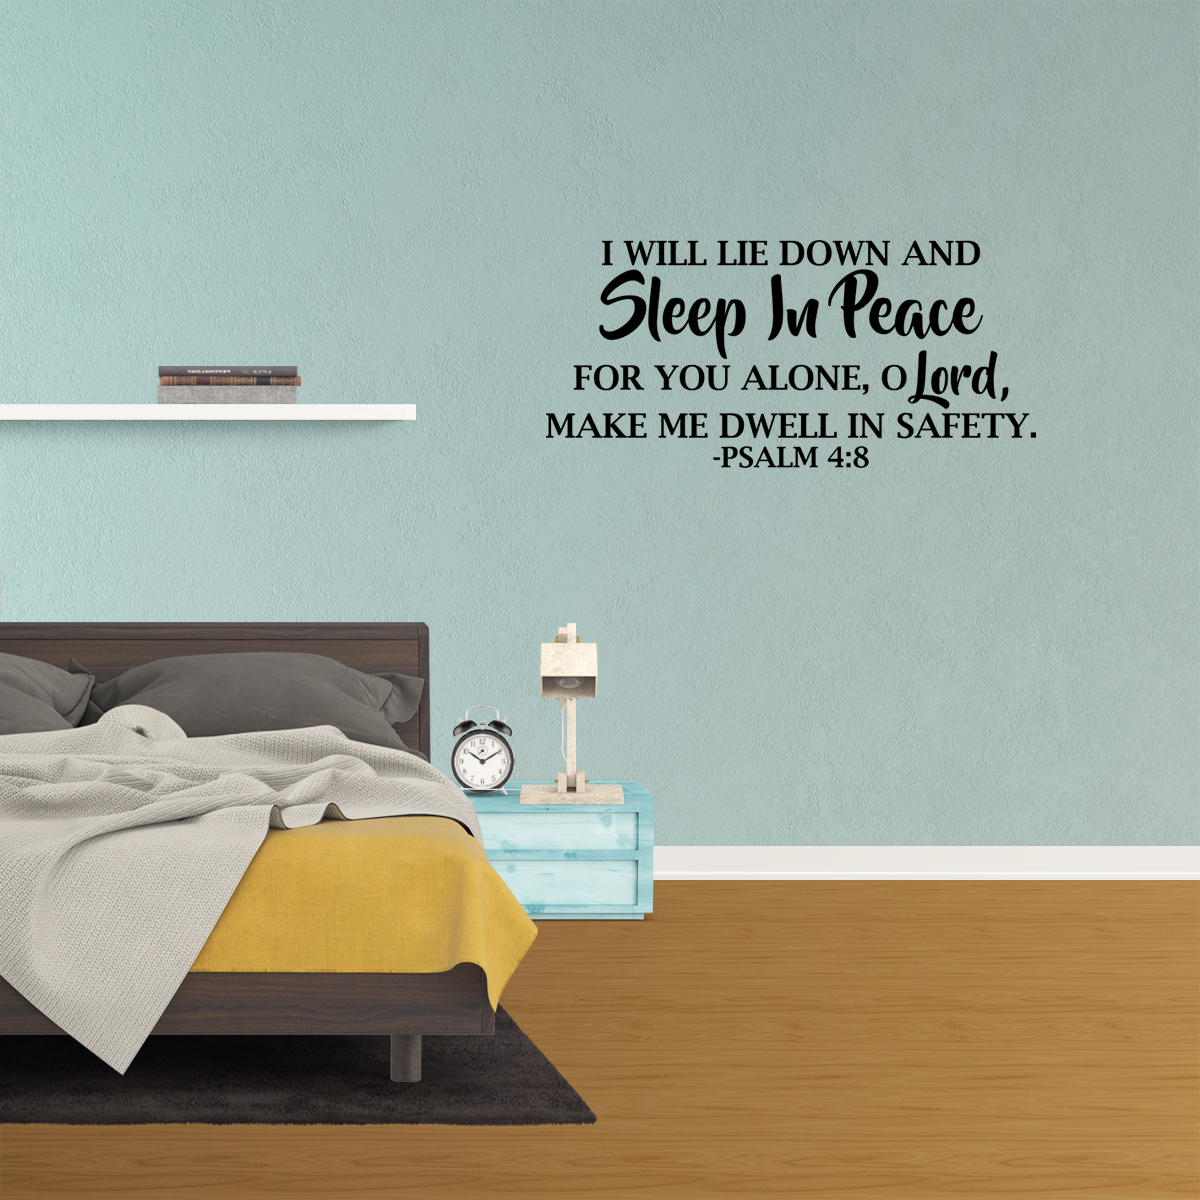 Bible verse decal Psalm 4:8,Bedroom wall decal Home quote decal Marriage wall decal